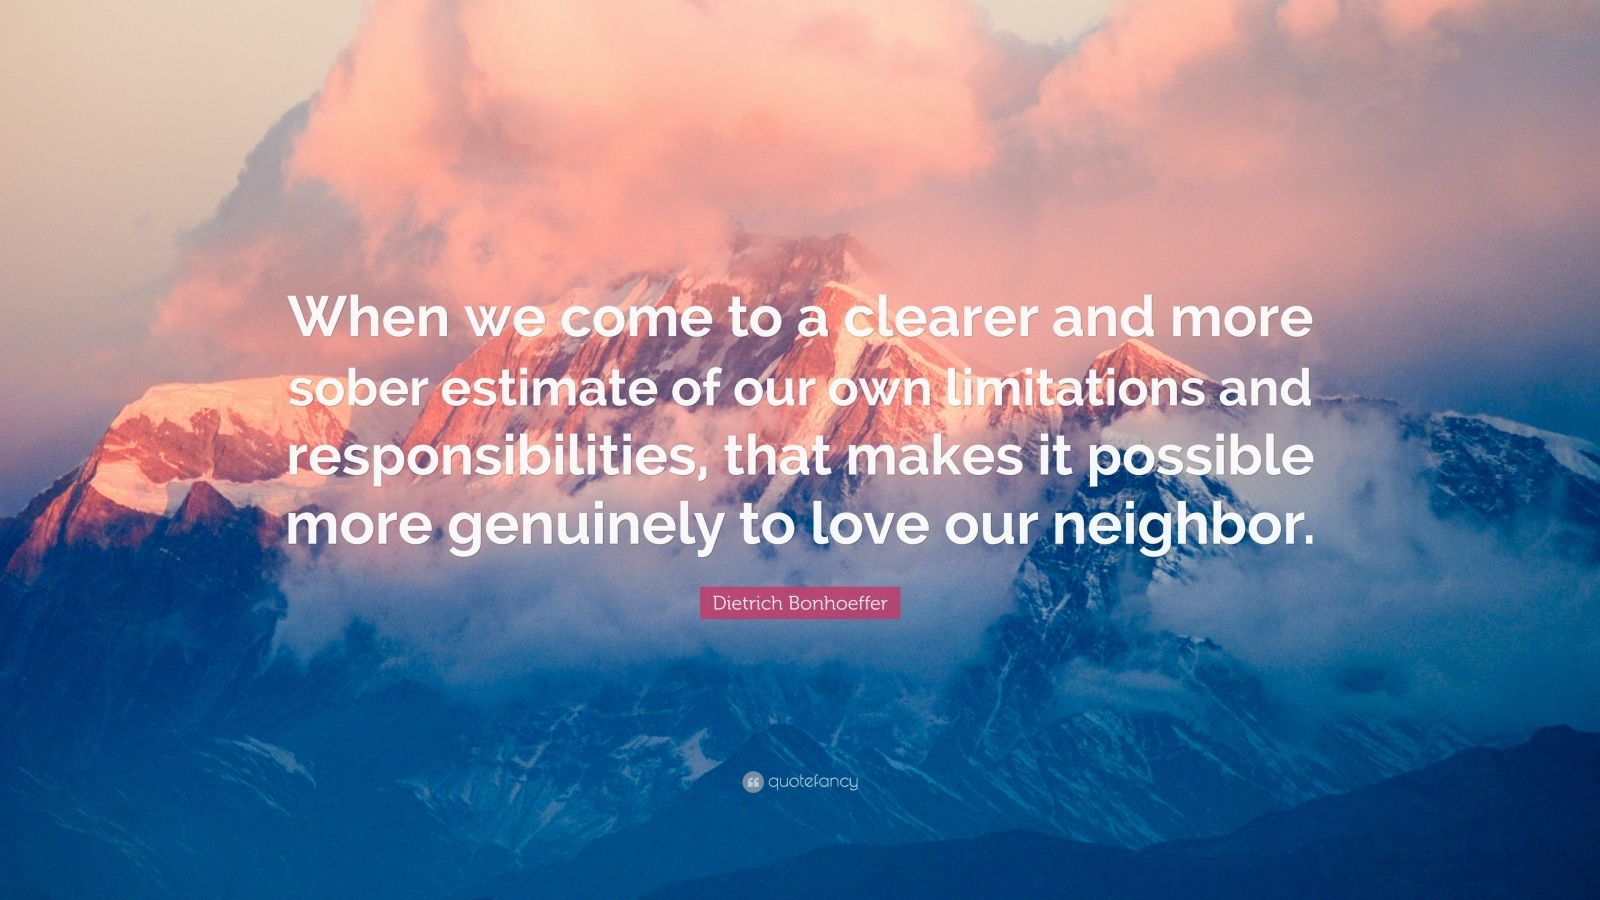 """Dietrich Bonhoeffer Quote: """"When we come to a clearer and more sober estimate of our own limitations and responsibilities, that makes it possible more genuinely to love our neighbor."""""""